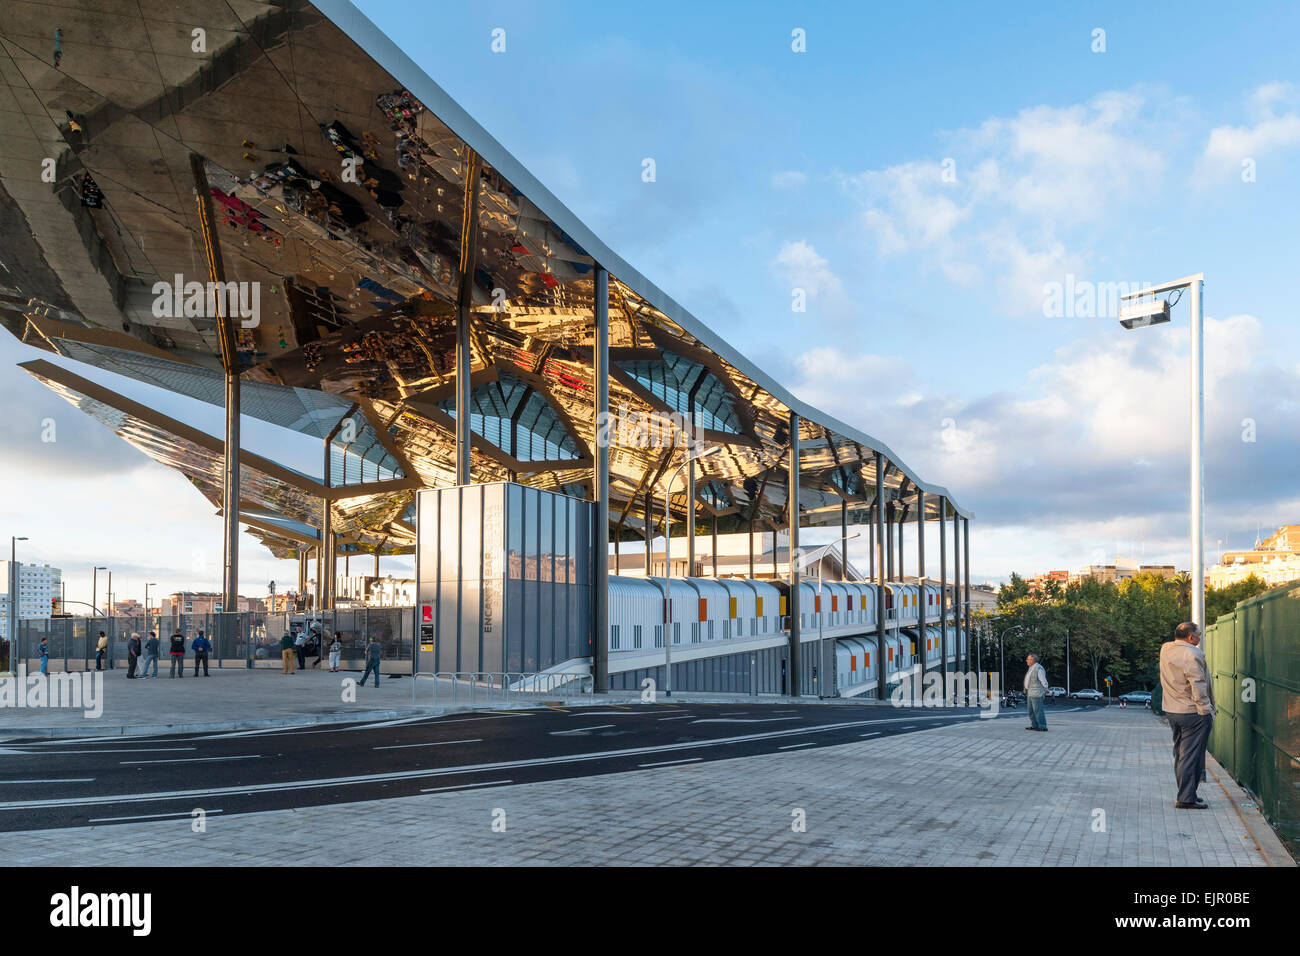 Perspective on slope of market canopy and street. Encants Bellcaire Flea Market Barcelona Spain. Architect b720 Fermín Vázque & Perspective on slope of market canopy and street. Encants ...